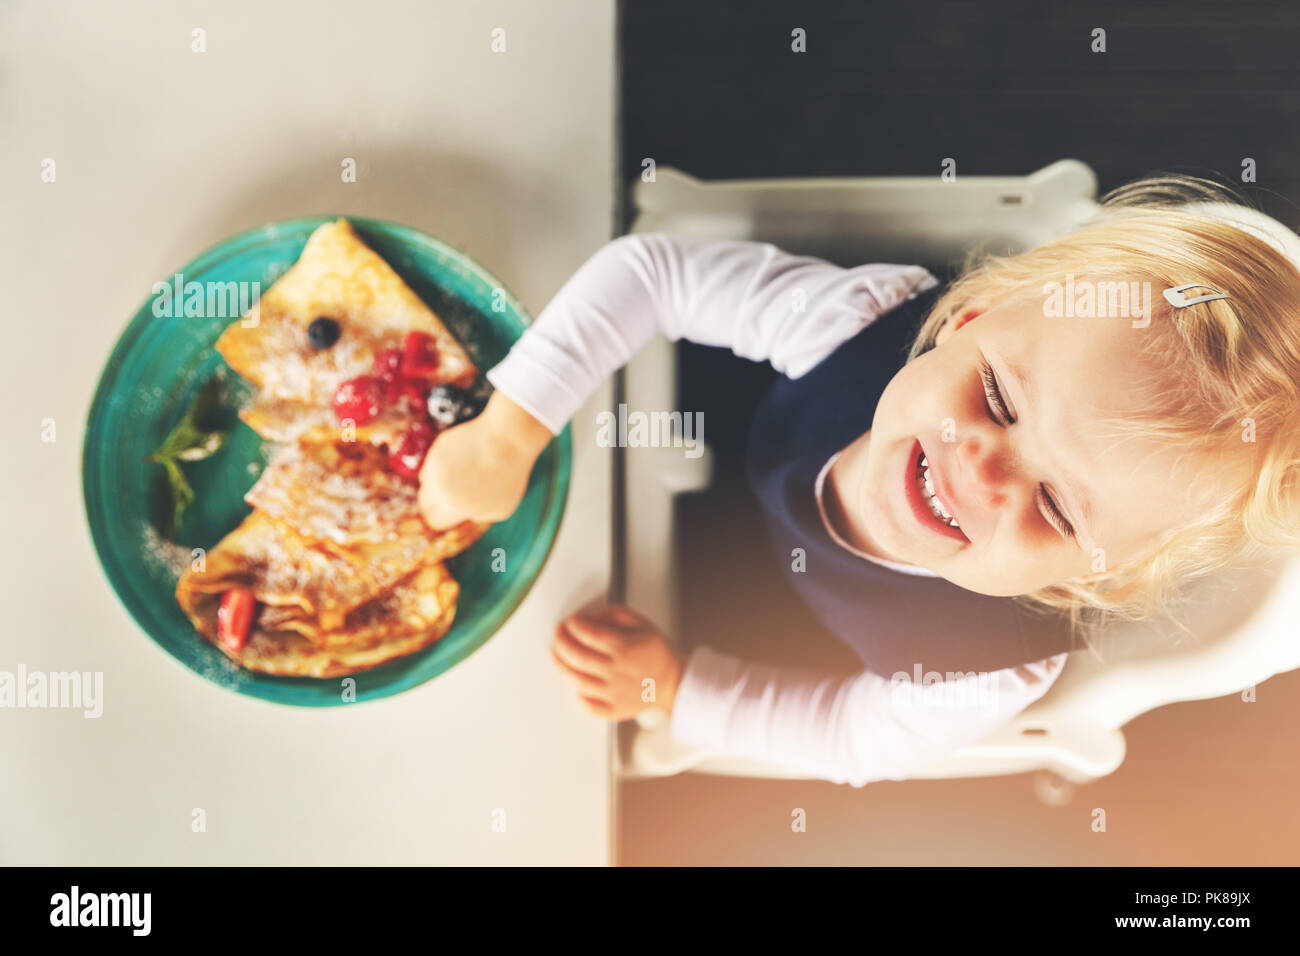 cute funny little girl eating pancakes with berries - Stock Image